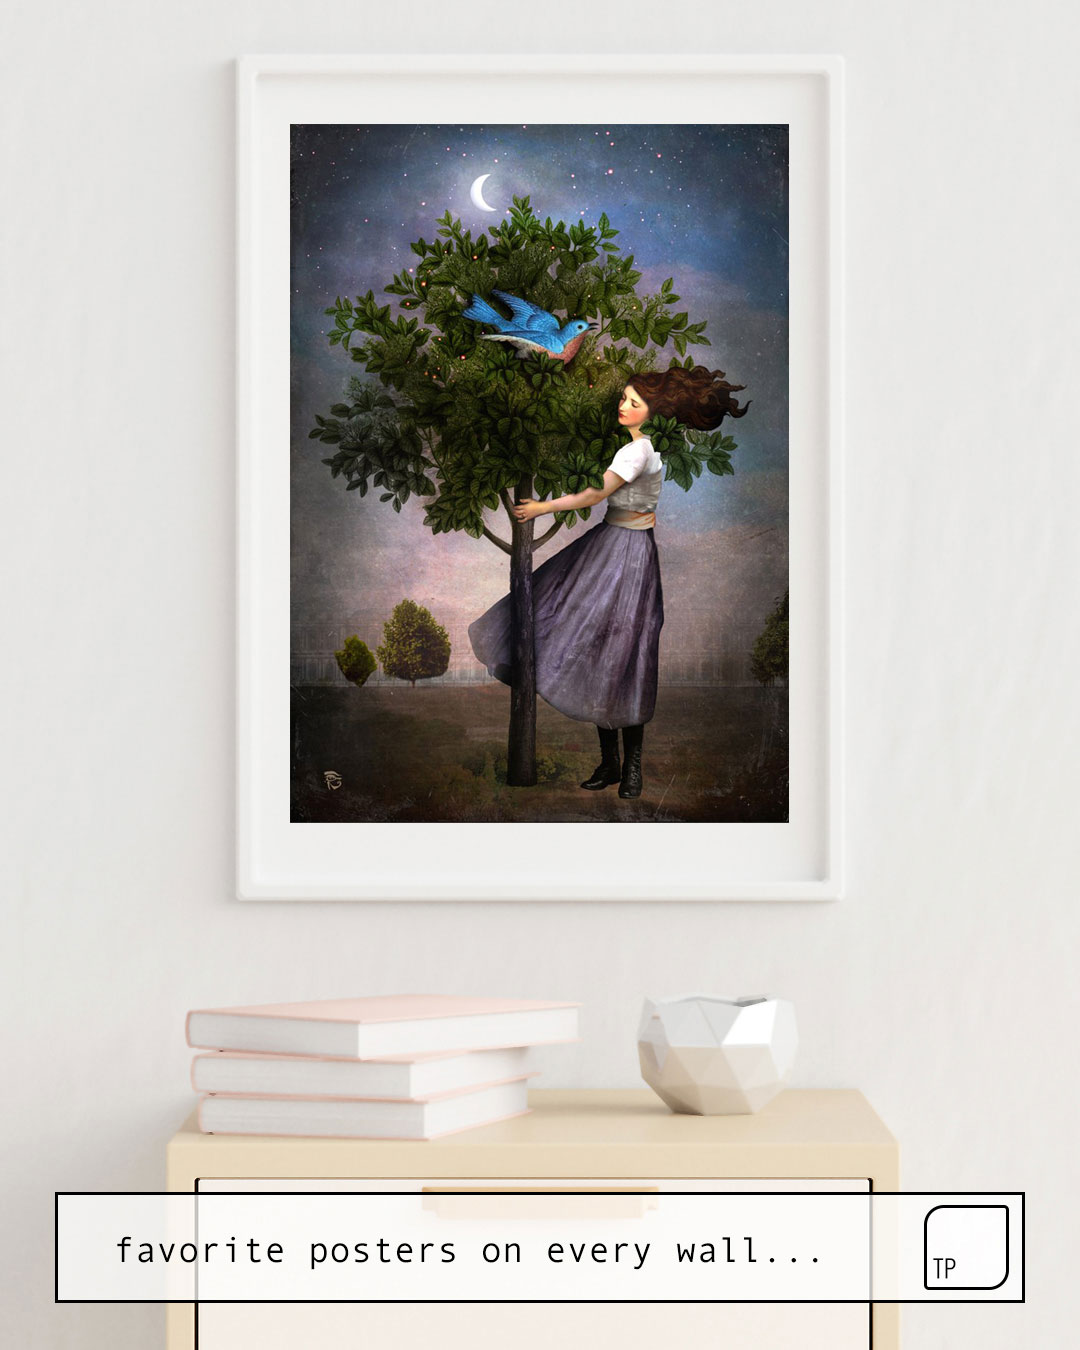 The photo shows an example of furnishing with the motif A BLUEBIRDS SONG by Christian Schloe as mural